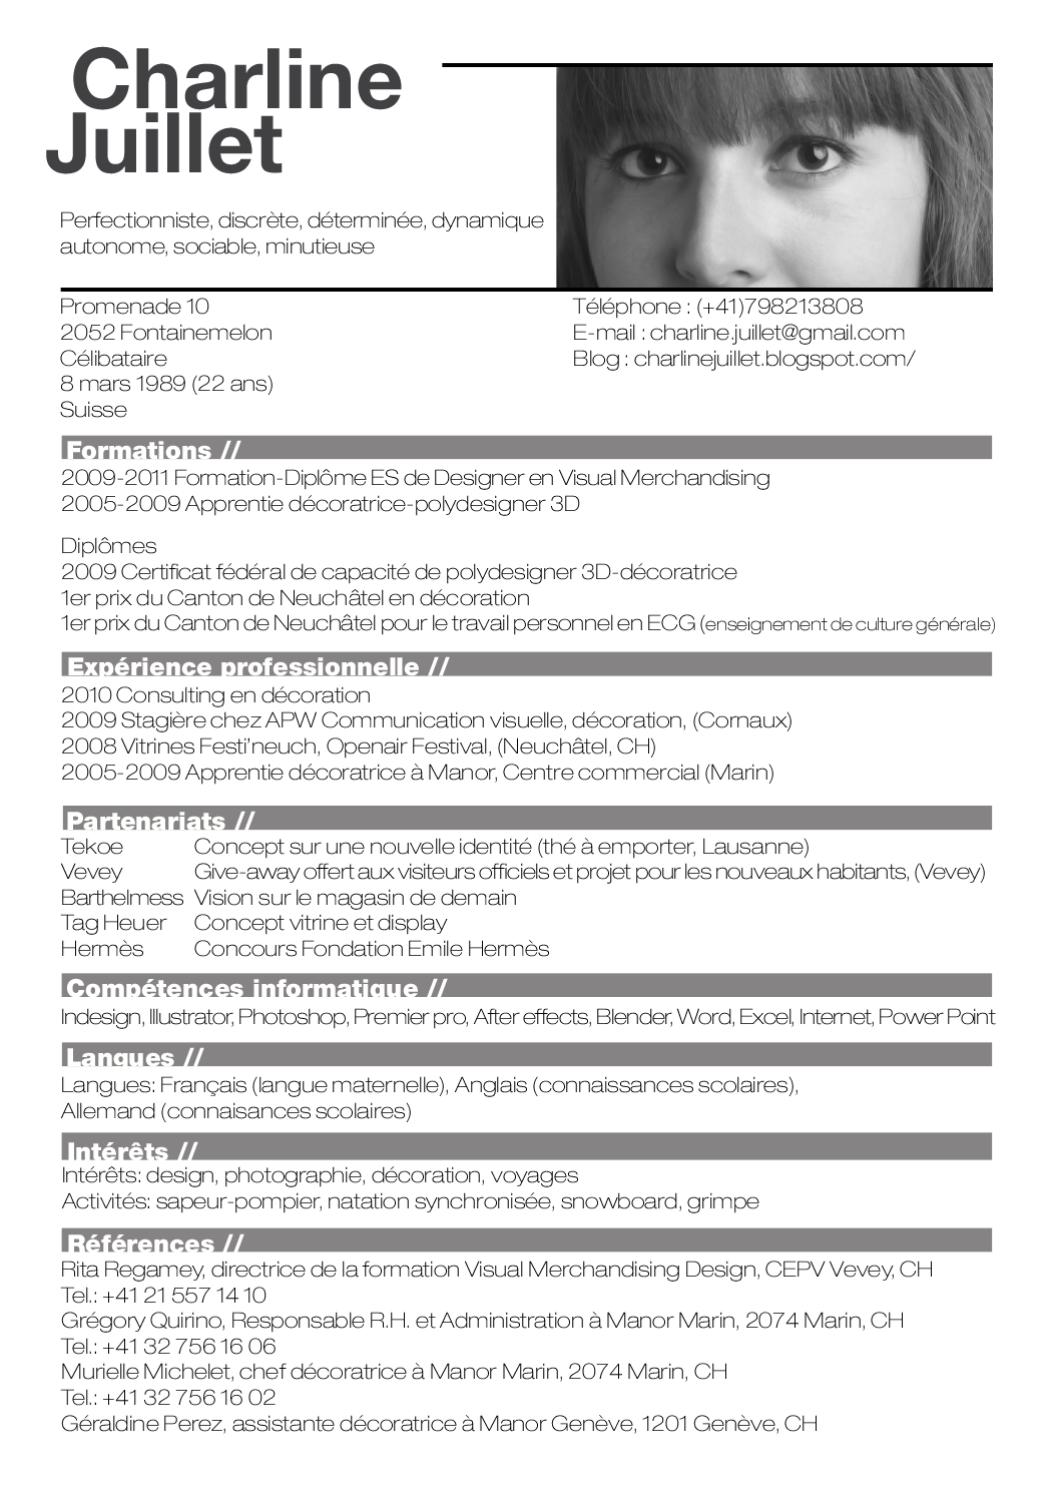 curriculum vitae by charline j